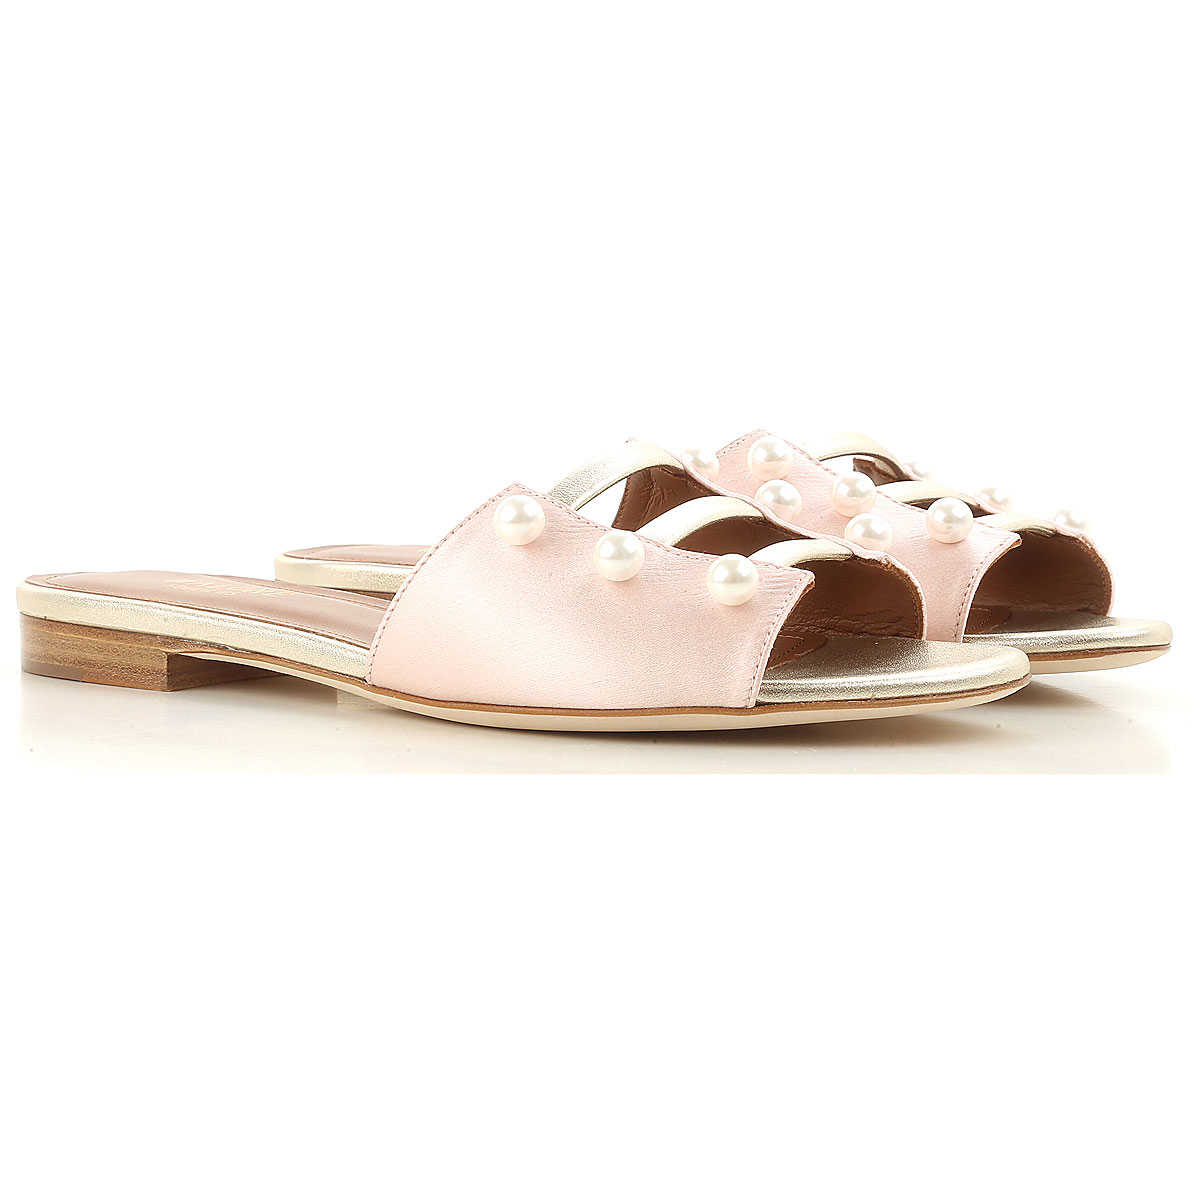 Malone Souliers Sandals for Women On Sale in Outlet Pink SE - GOOFASH